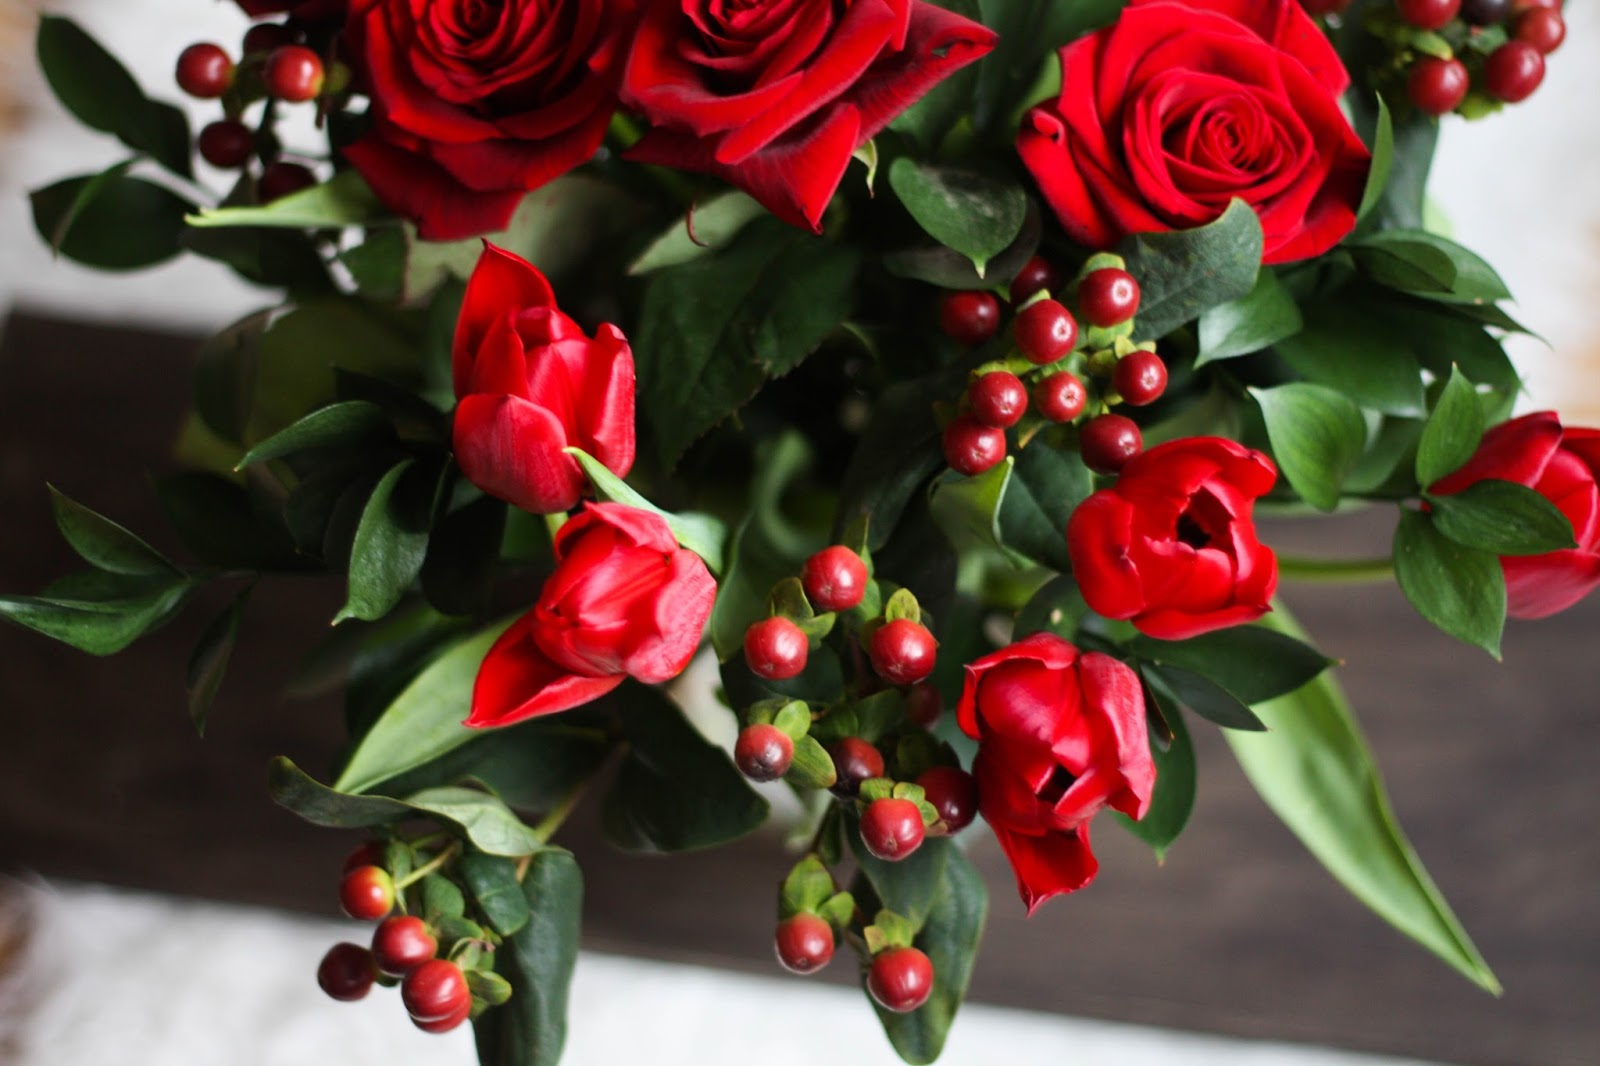 Winter blooms: 5 cut flowers for your winter table